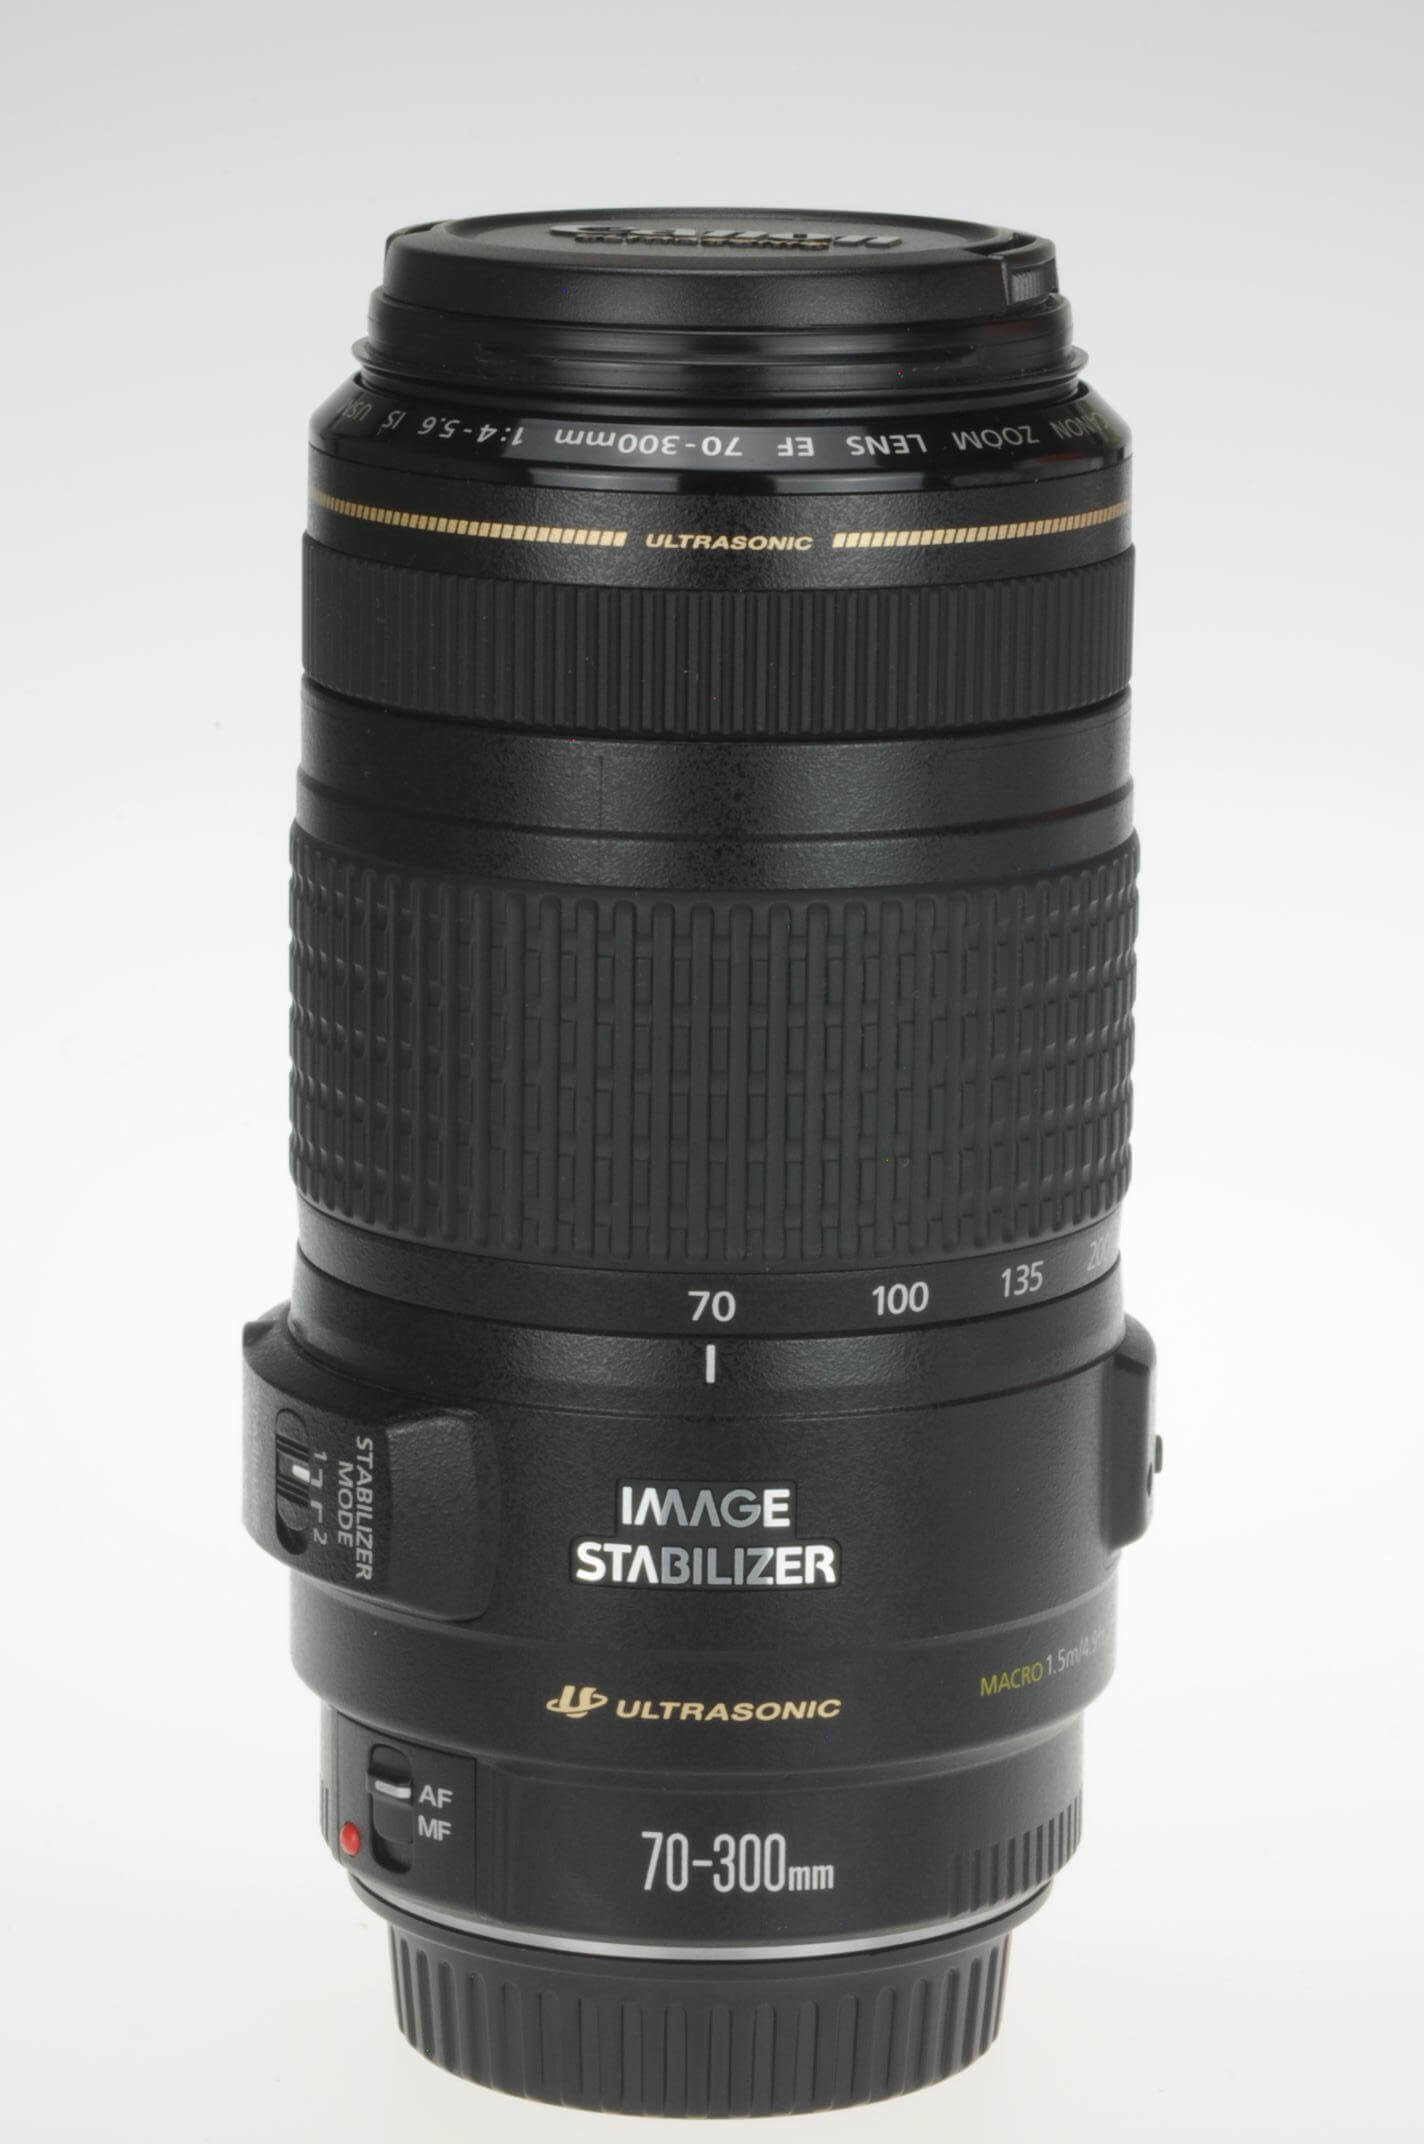 Canon 70-300 f4-5.6 IS USM Mint condition!